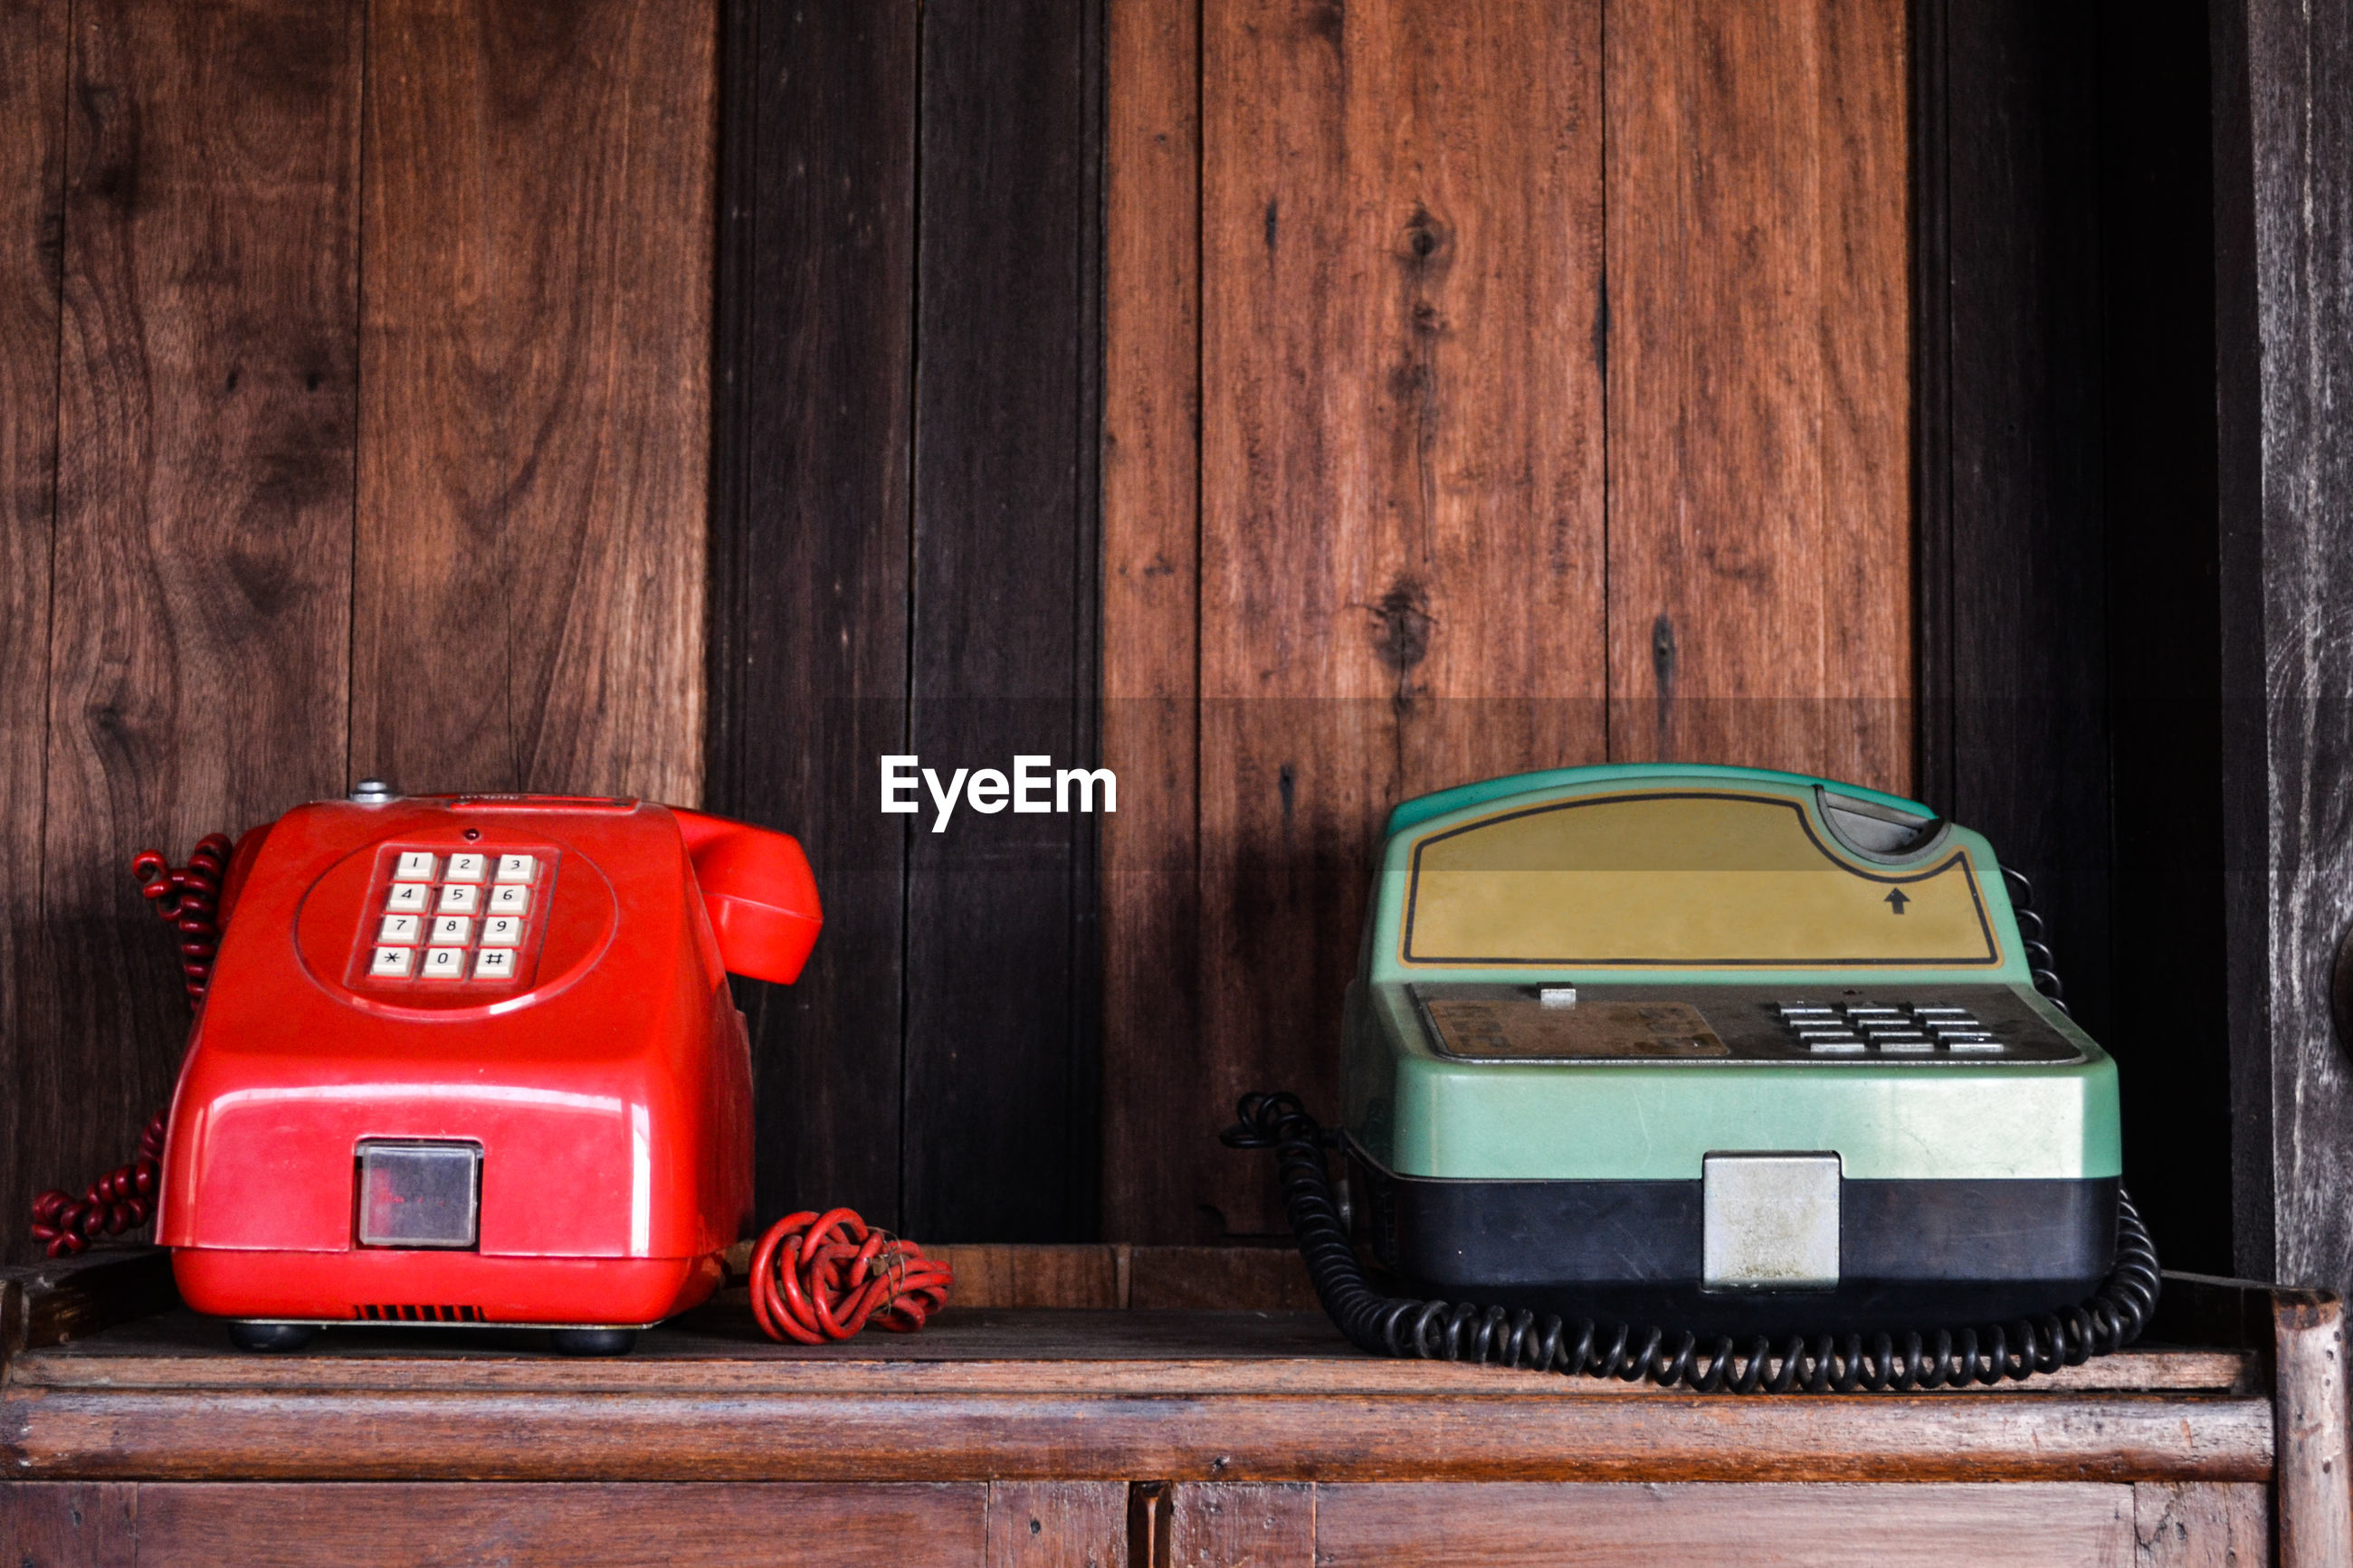 Old telephones on wooden table